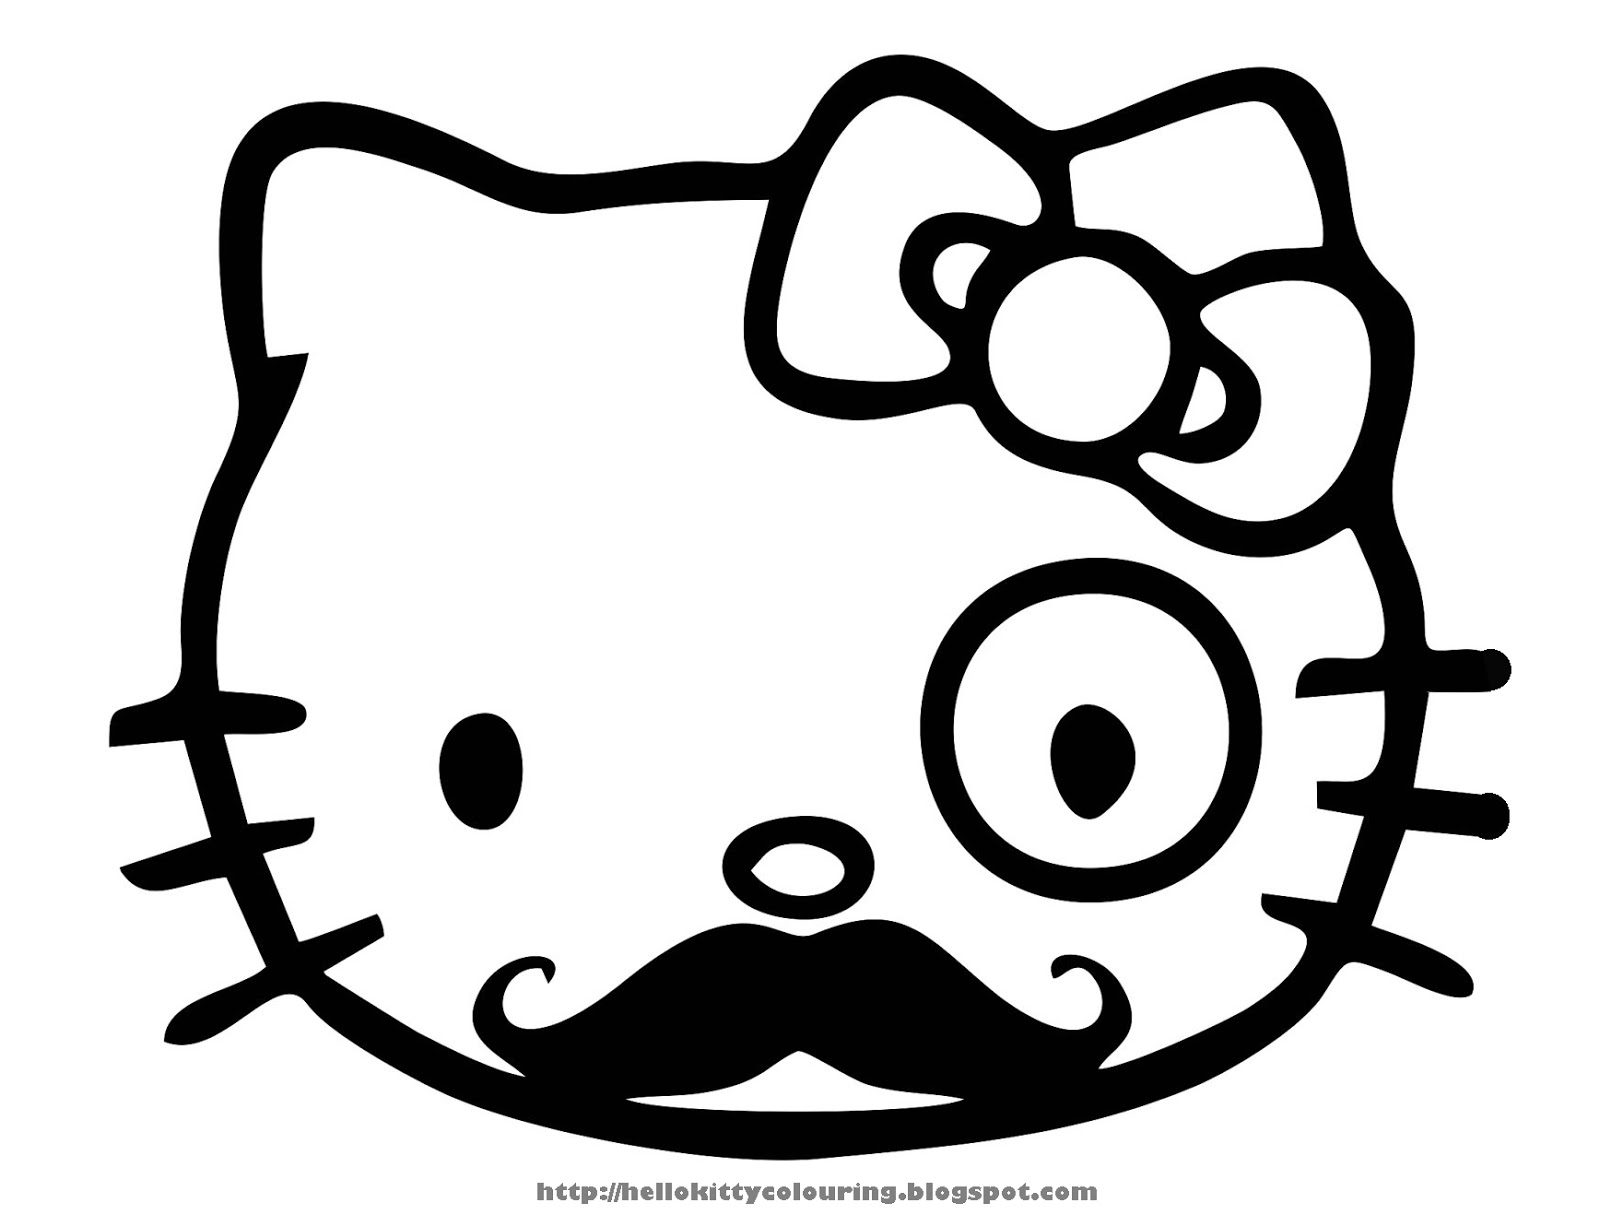 images of hello kitty coloring pages lovetheprimlook2 baby hello kitty coloring pages hello coloring pages of kitty images